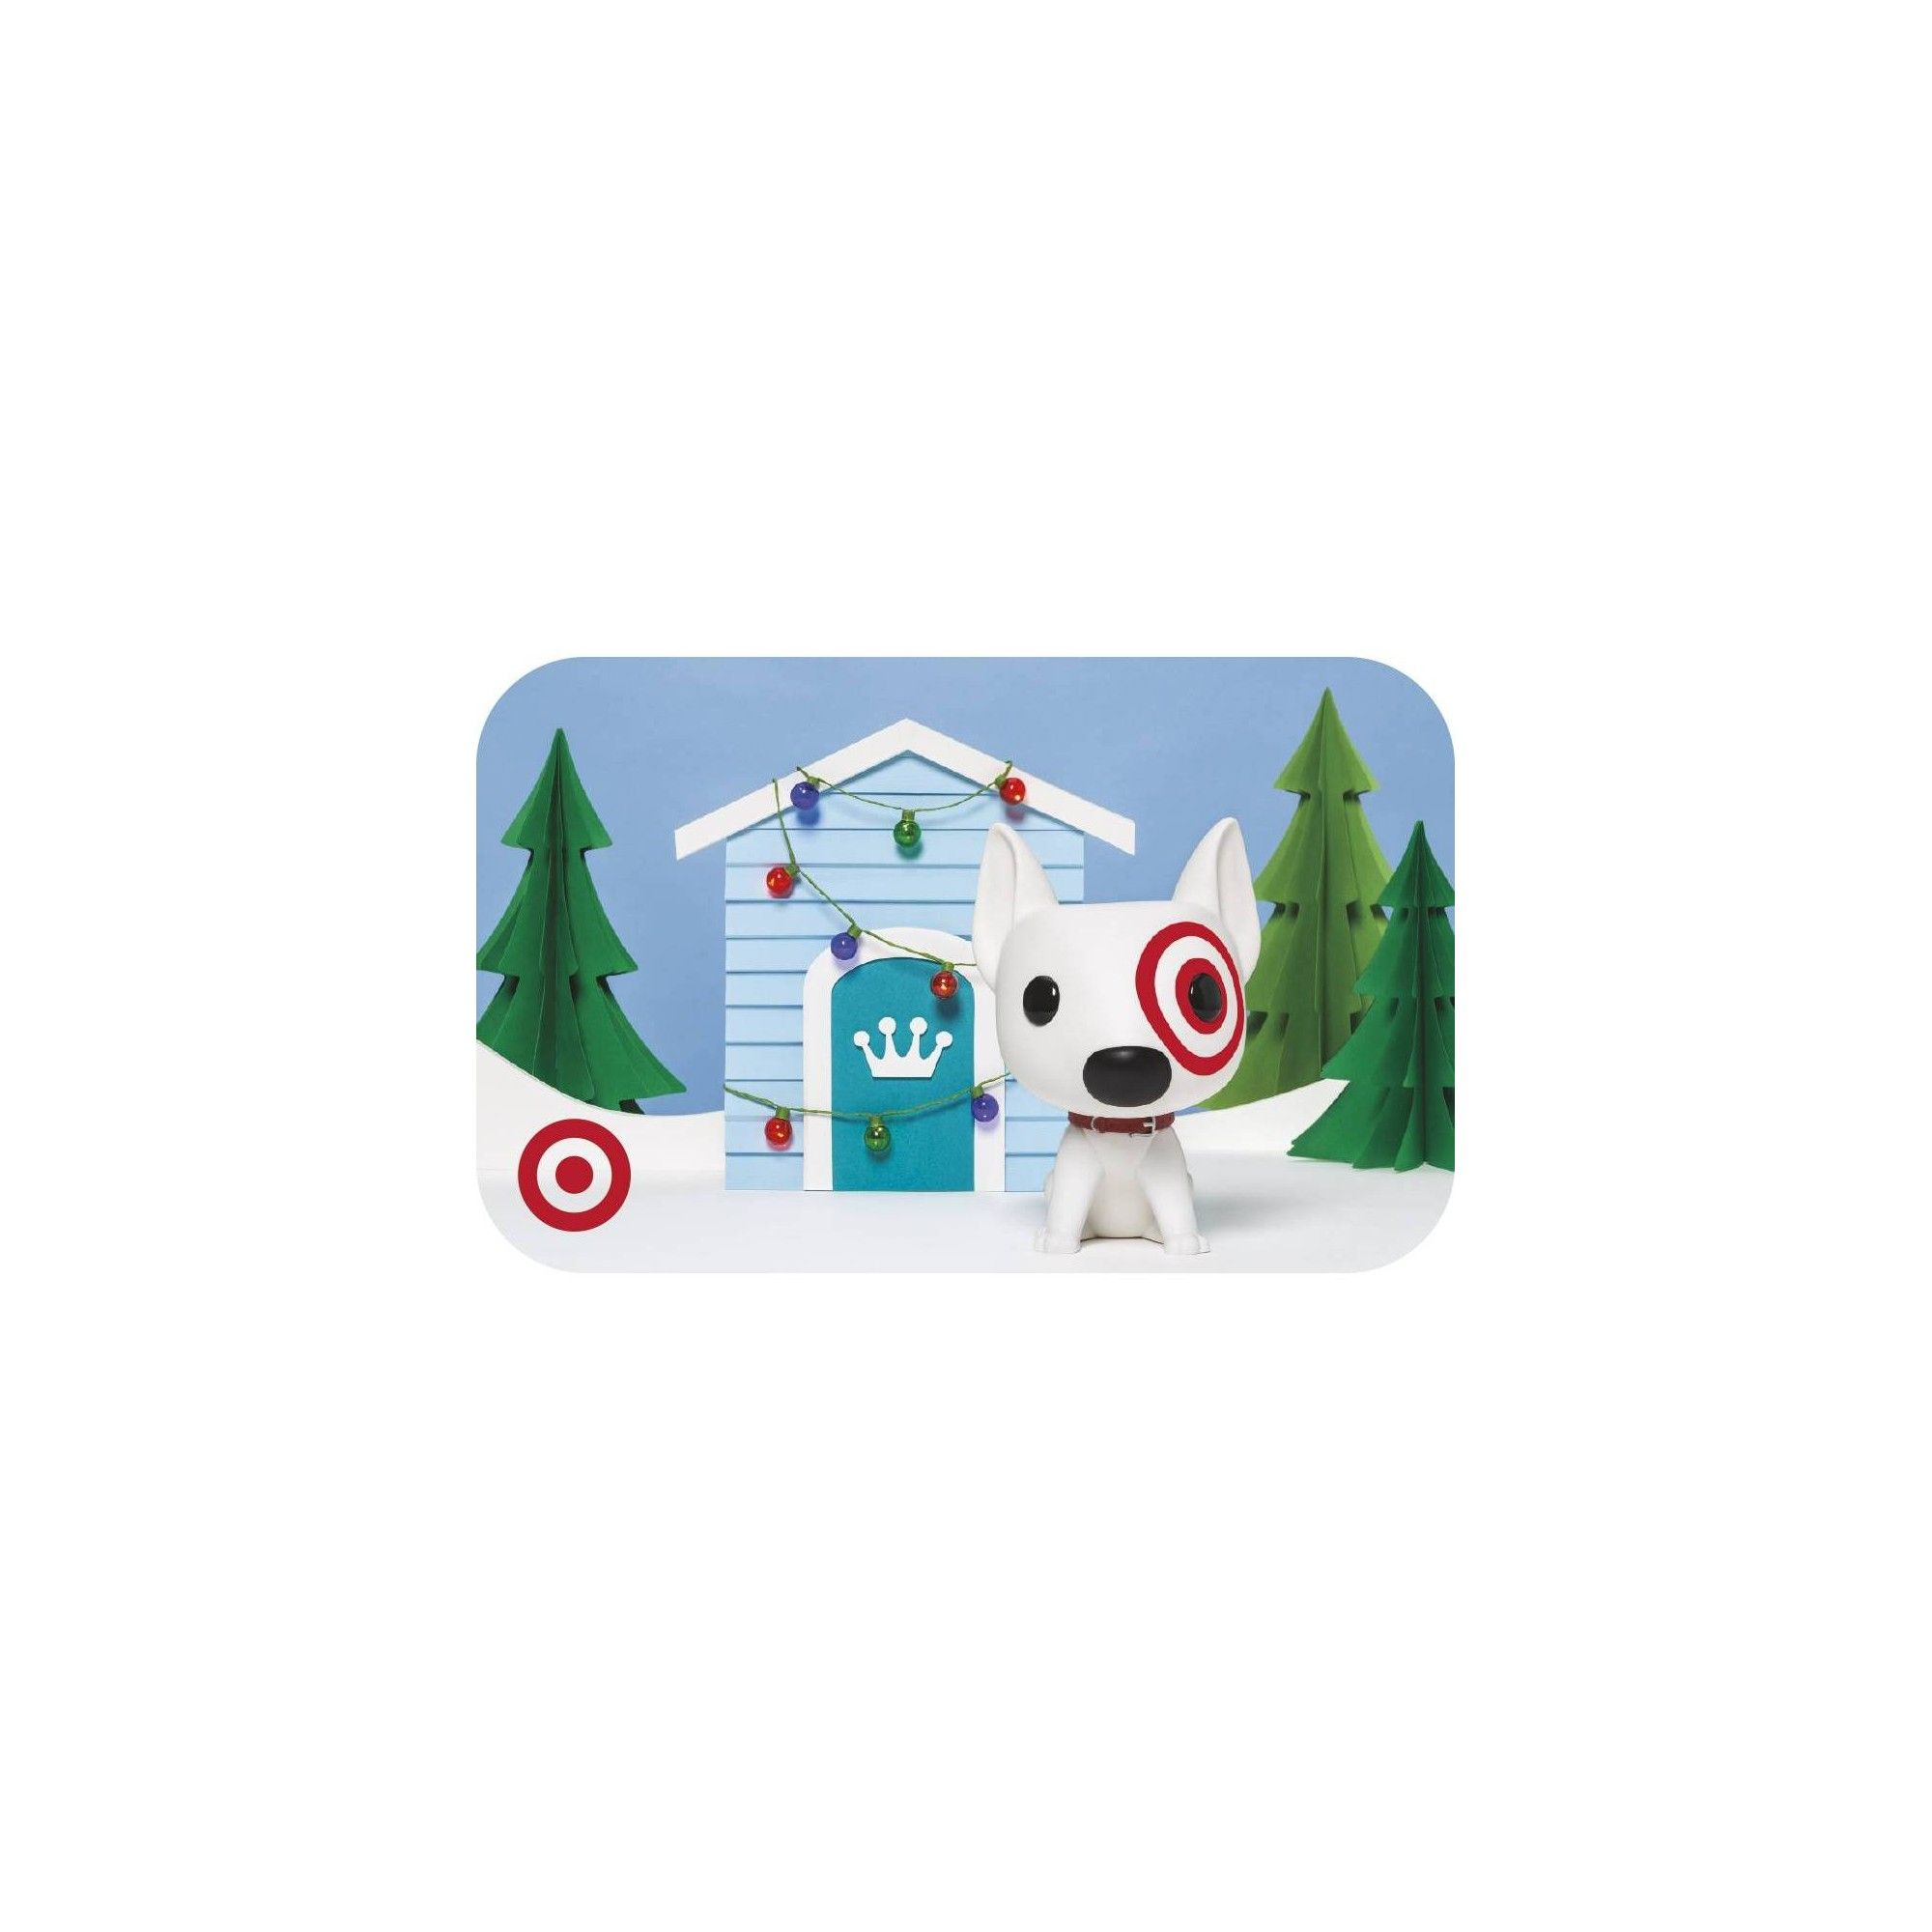 Funko Doghouse 1000 Target Giftcards Disney Gift Card Disney